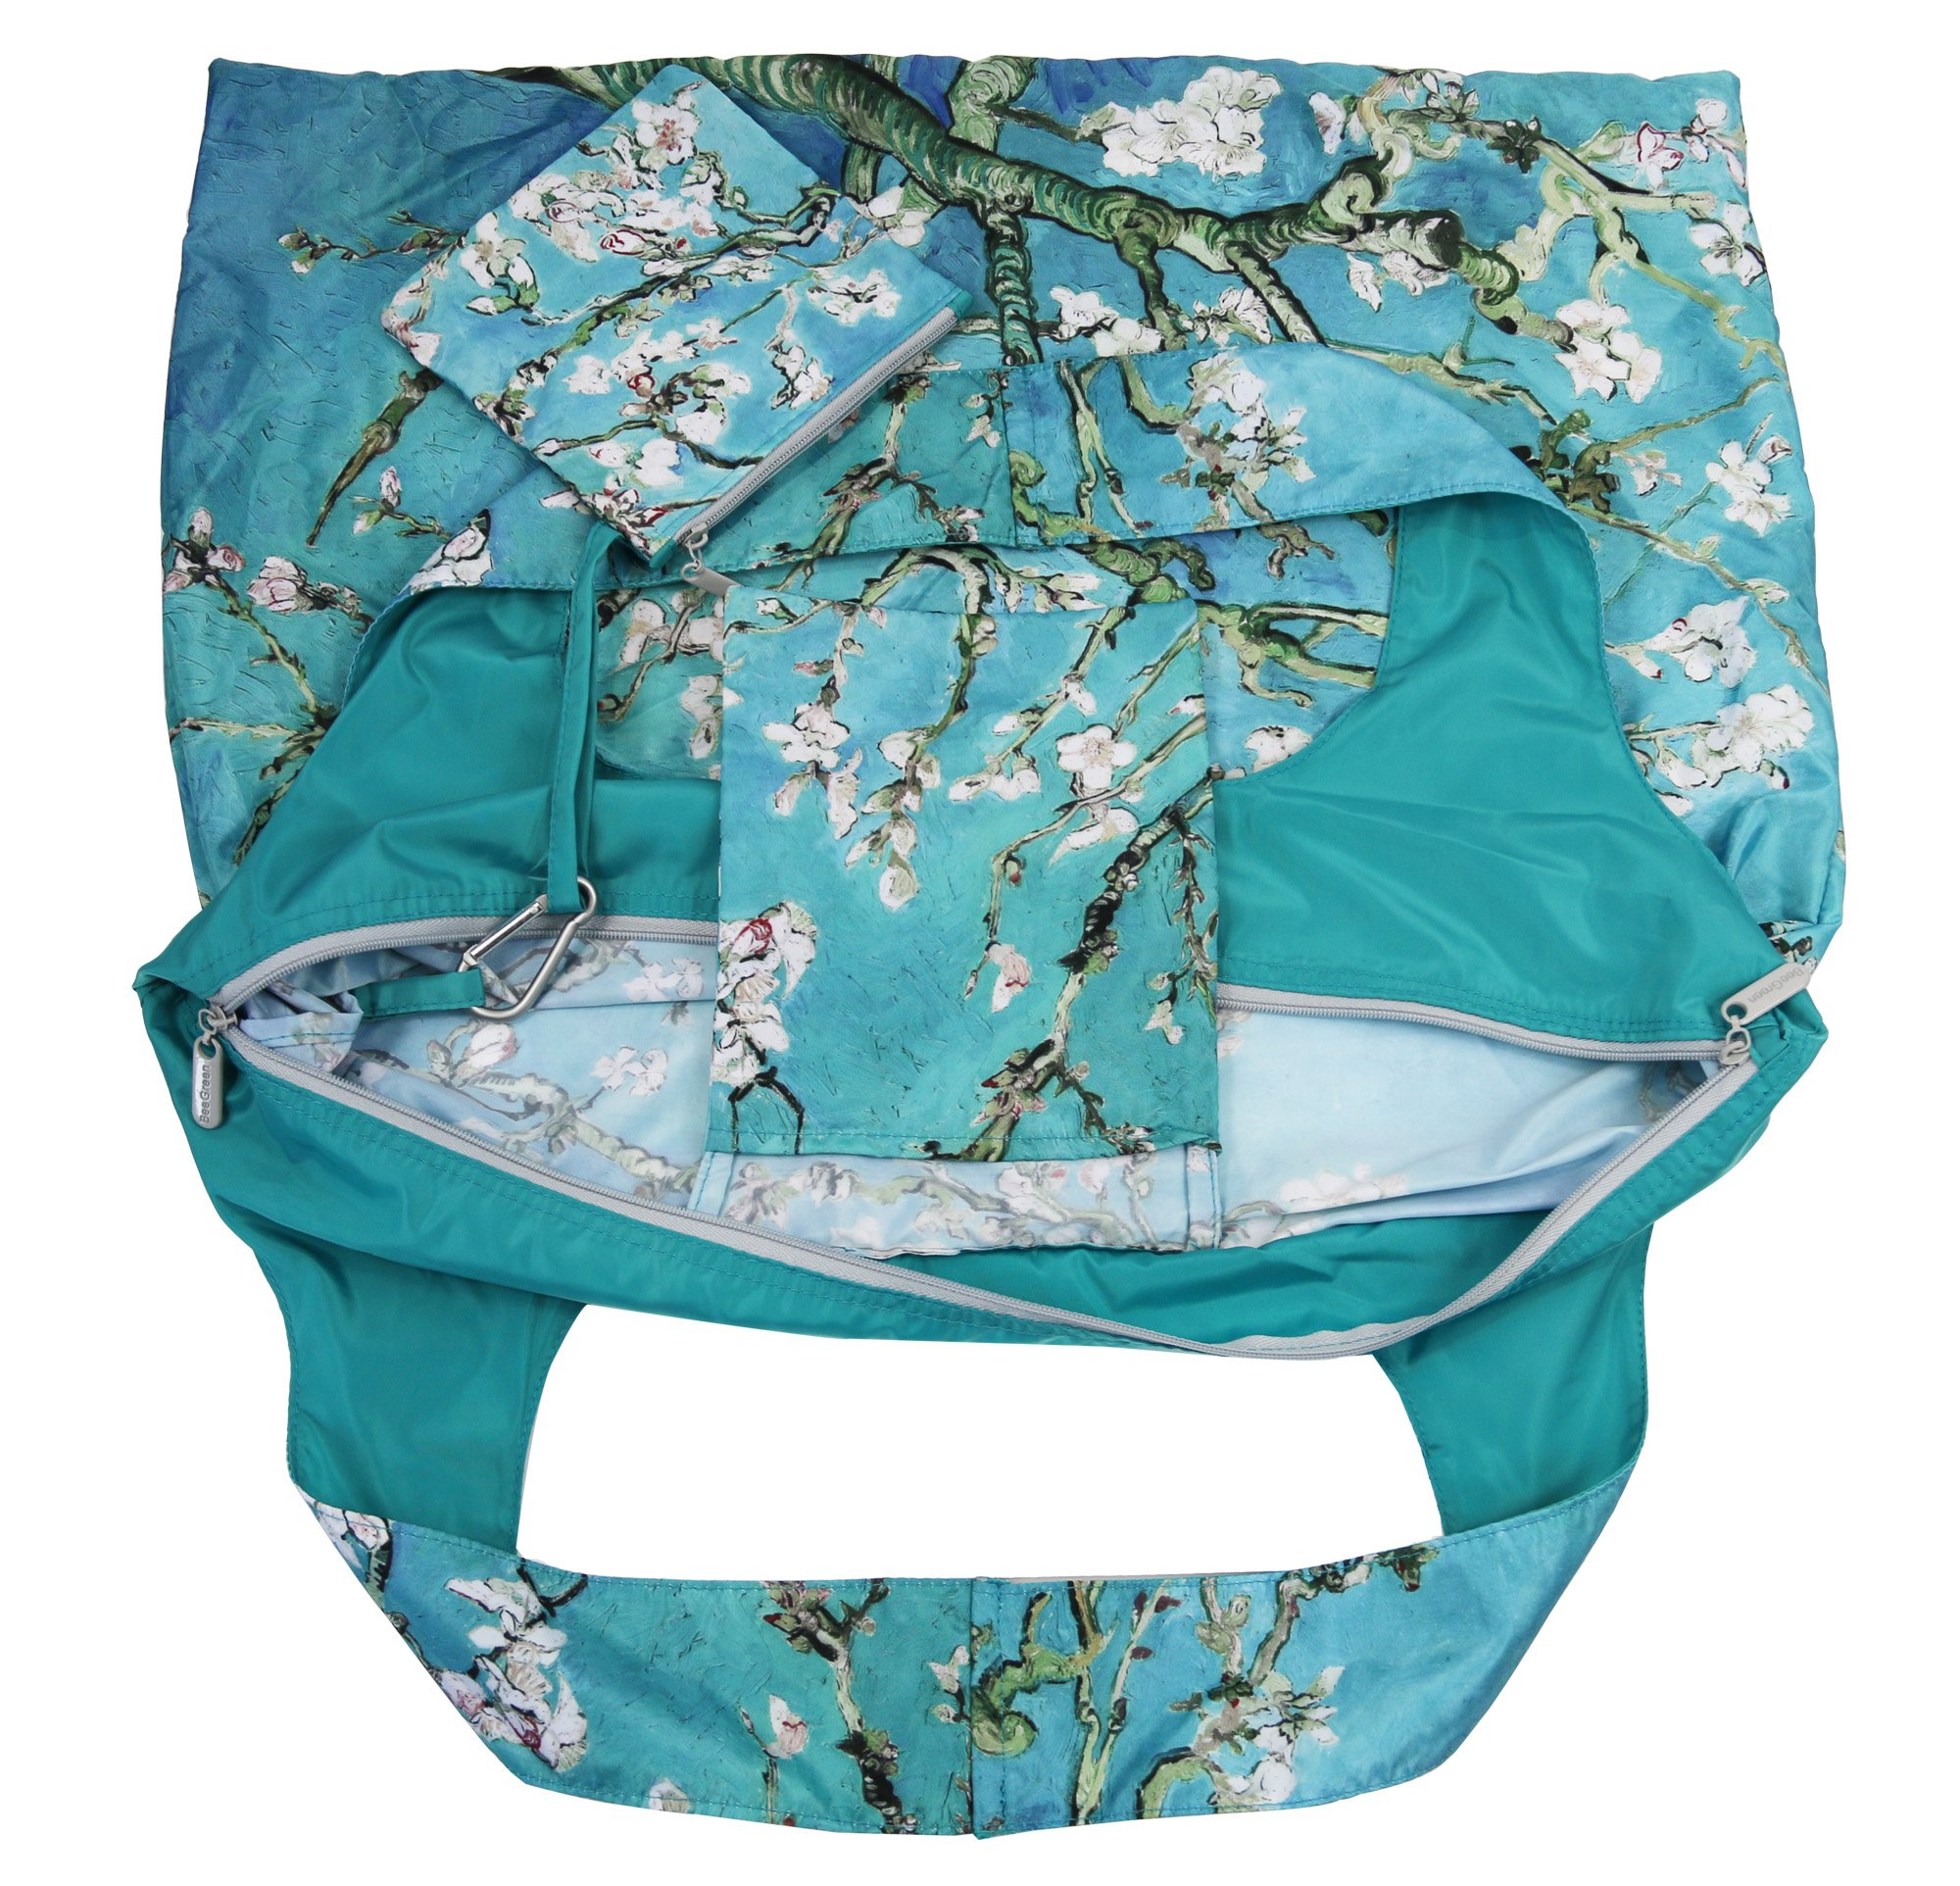 Reusable Grocery Bags with Zipper Closure,Foldable into Zippered Pocket … (Apricot tree) by BeeGreen (Image #6)